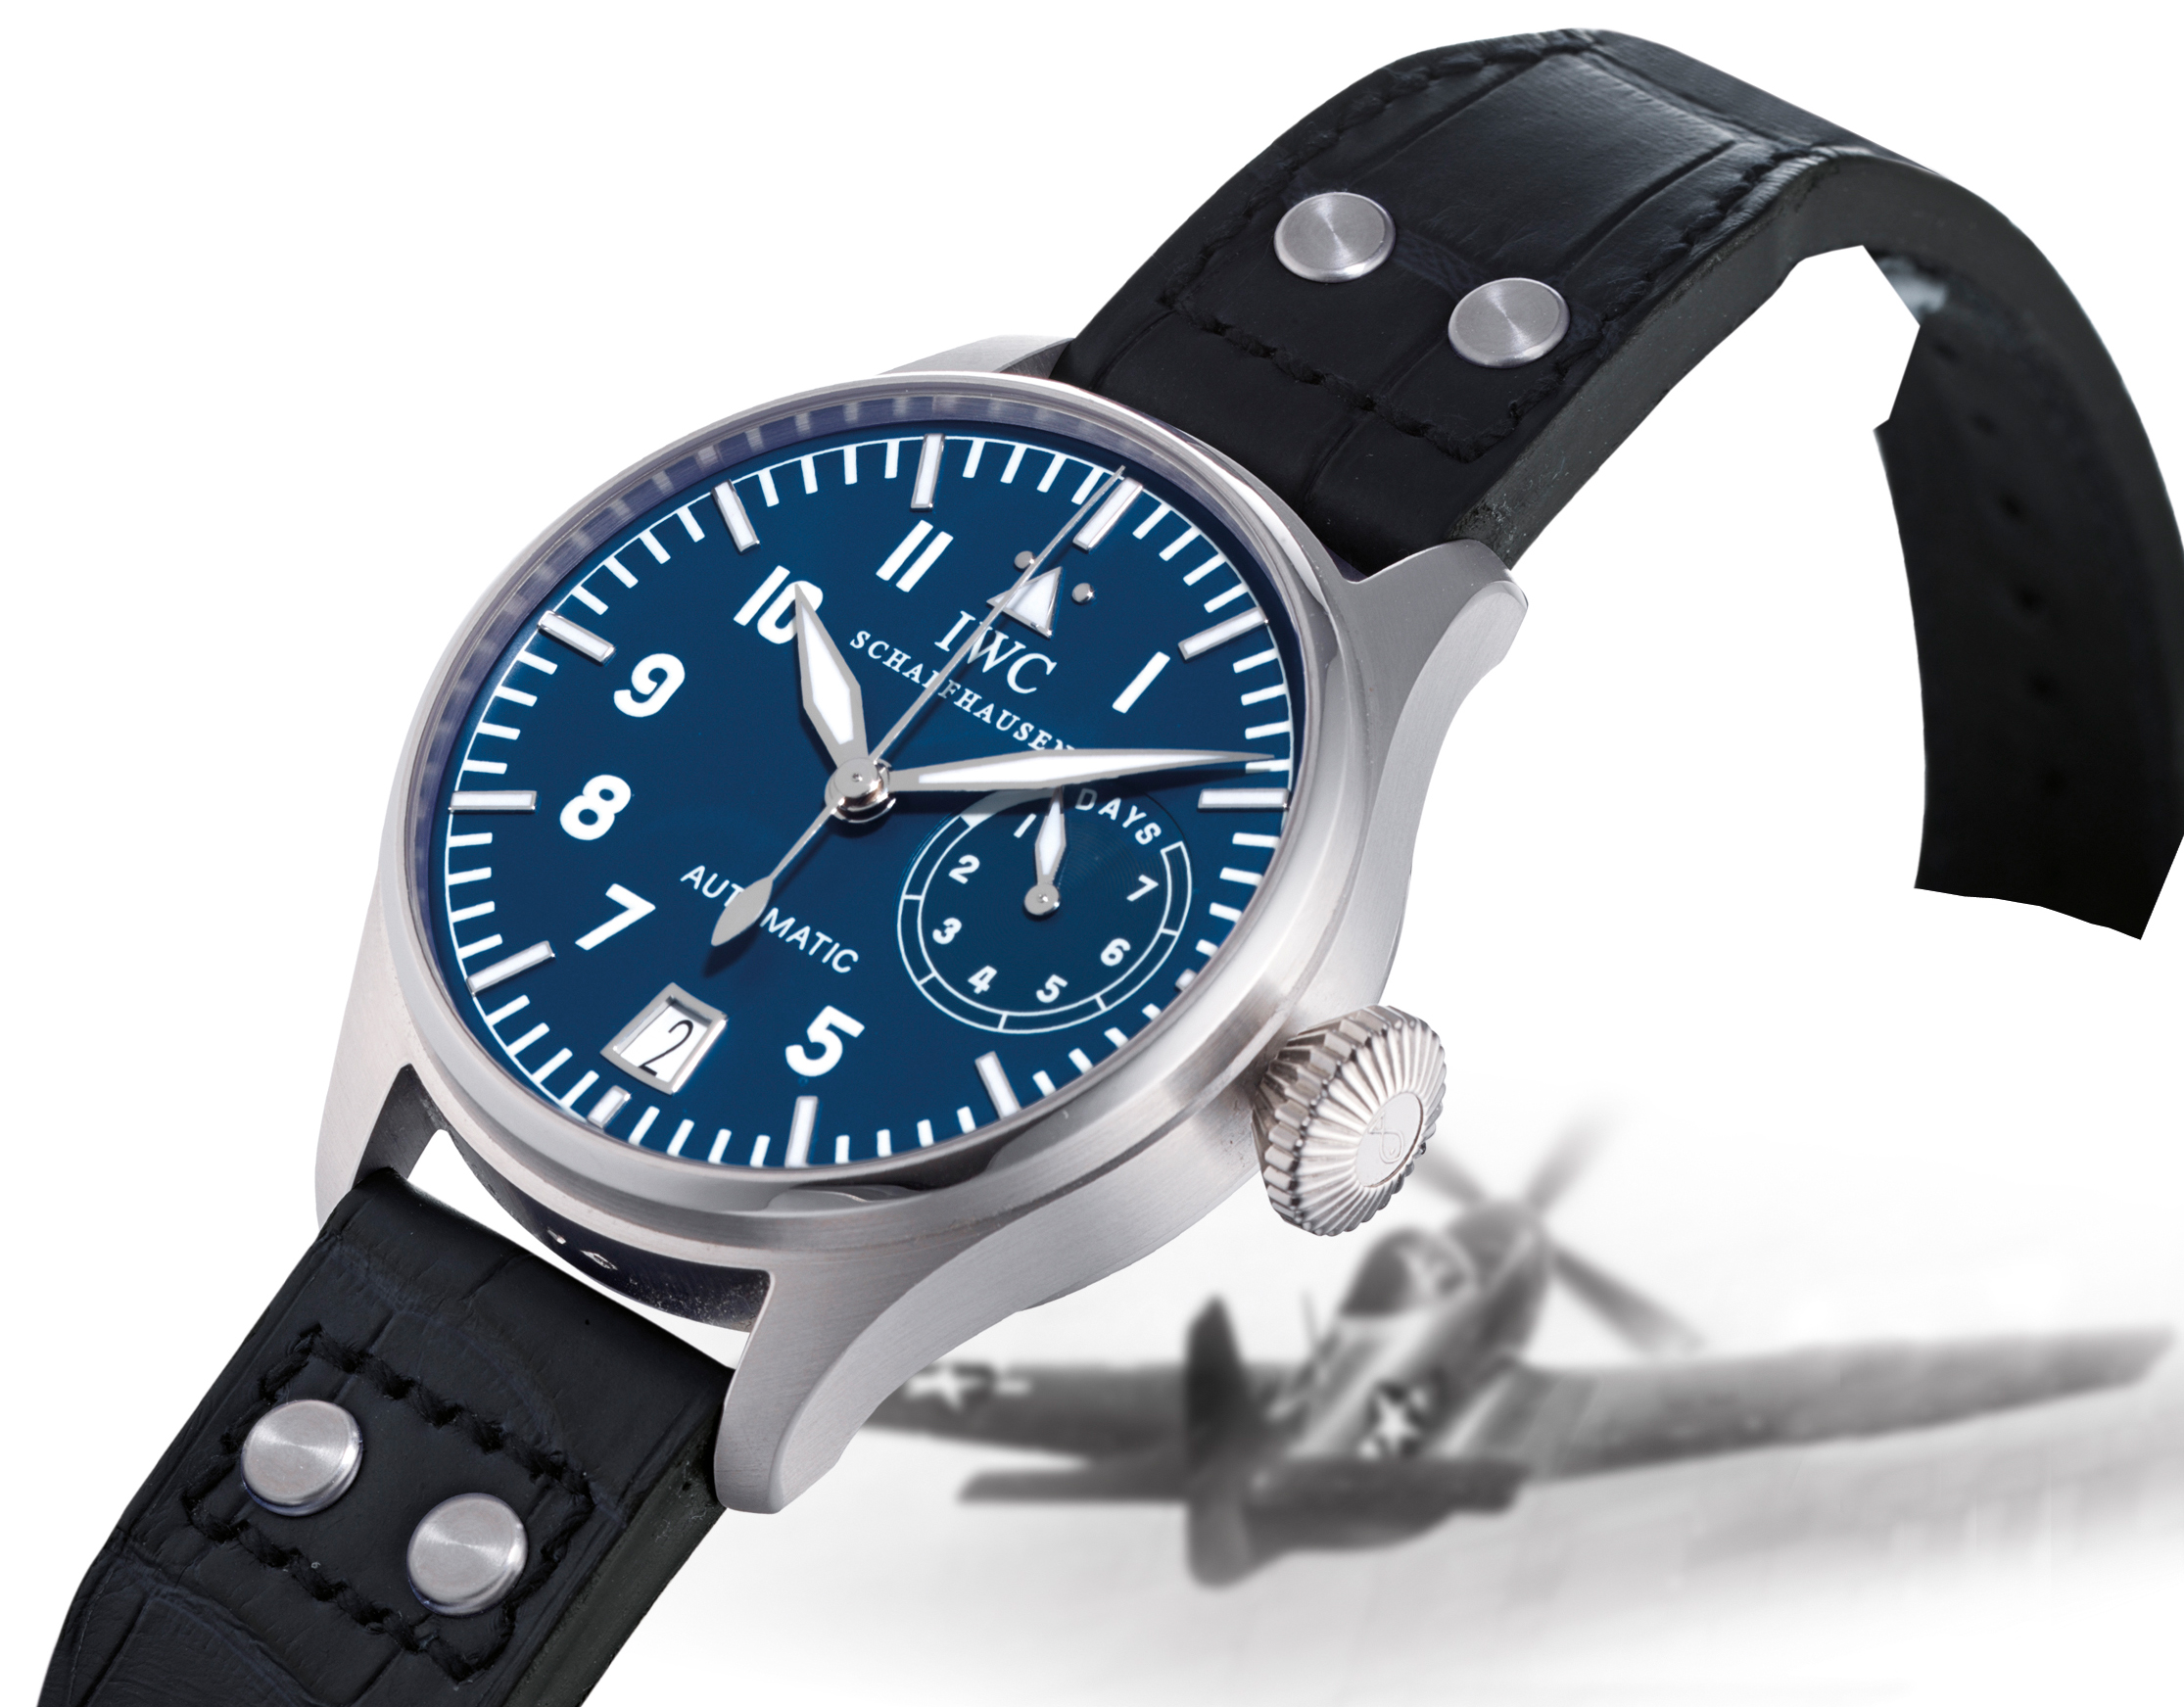 IWC, DIE GROSSE FLIEGERUHR  OVERSIZED PLATINUM AUTOMATIC PILOT'S WRISTWATCH WITH DATE AND 7-DAYS POWER RESERVE INDICATION, LIMITED EDITION OF 500